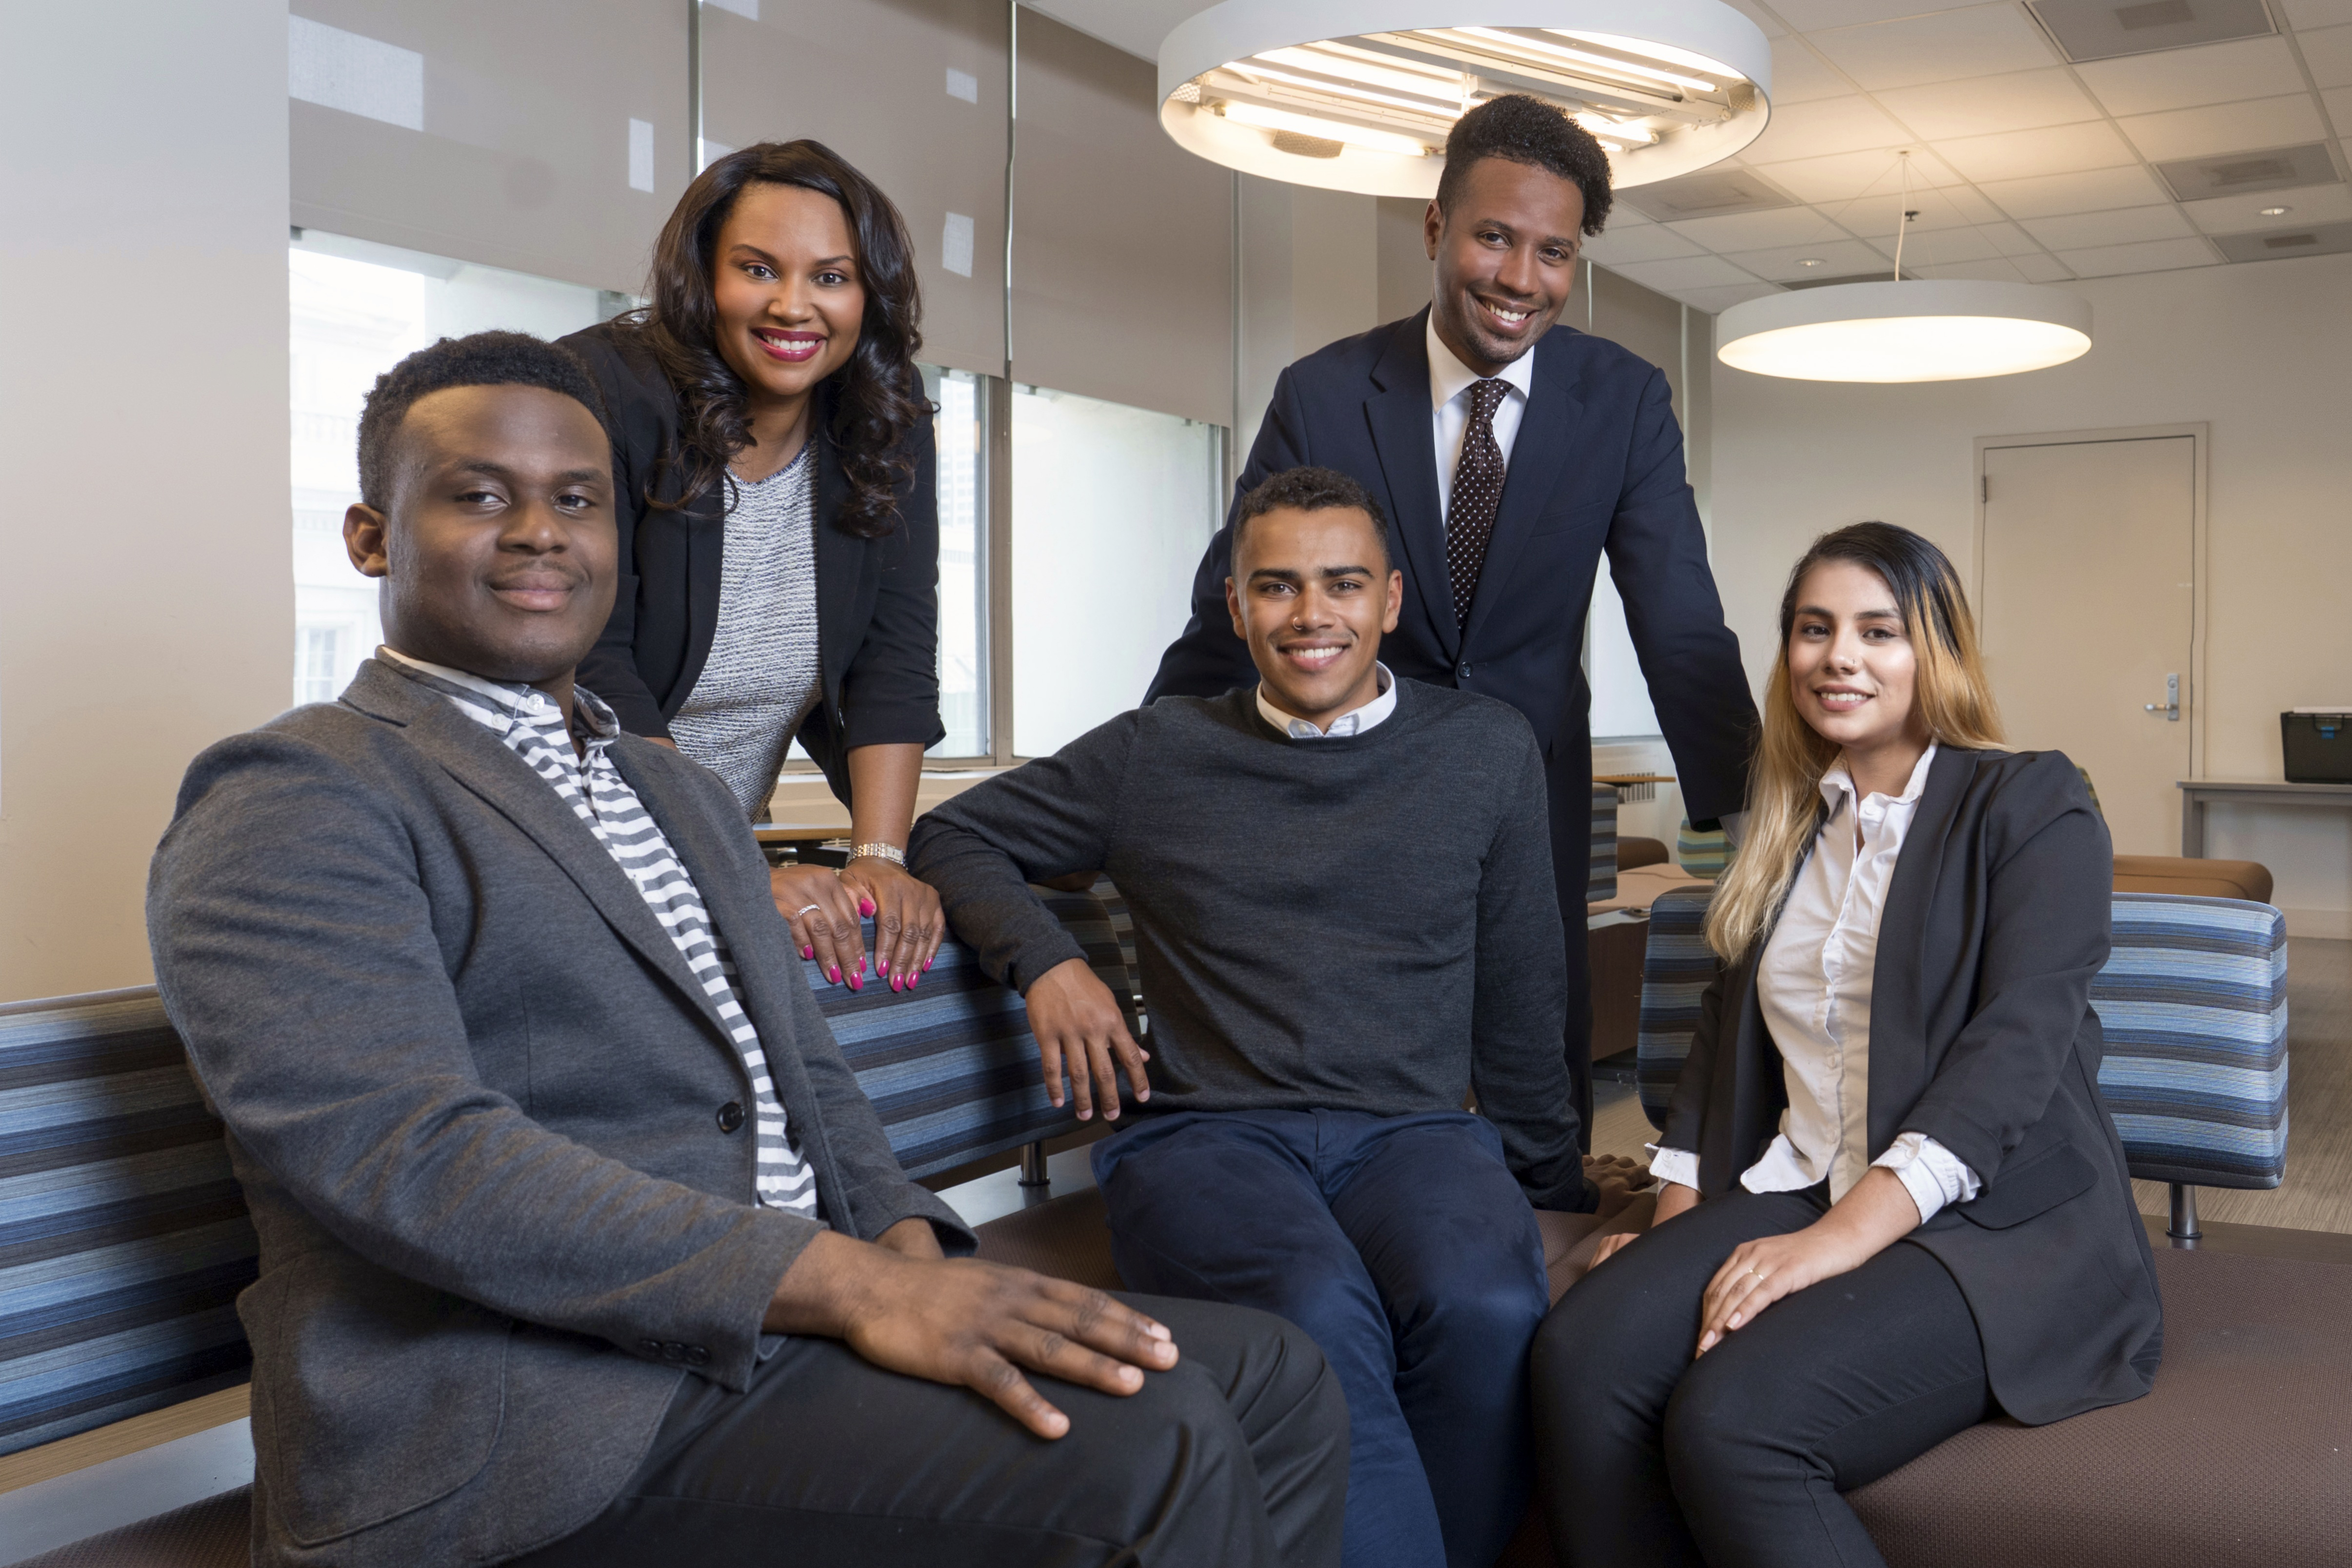 Leop Opening Doors For Students Of Promise Uc Hastings Law San Francisco